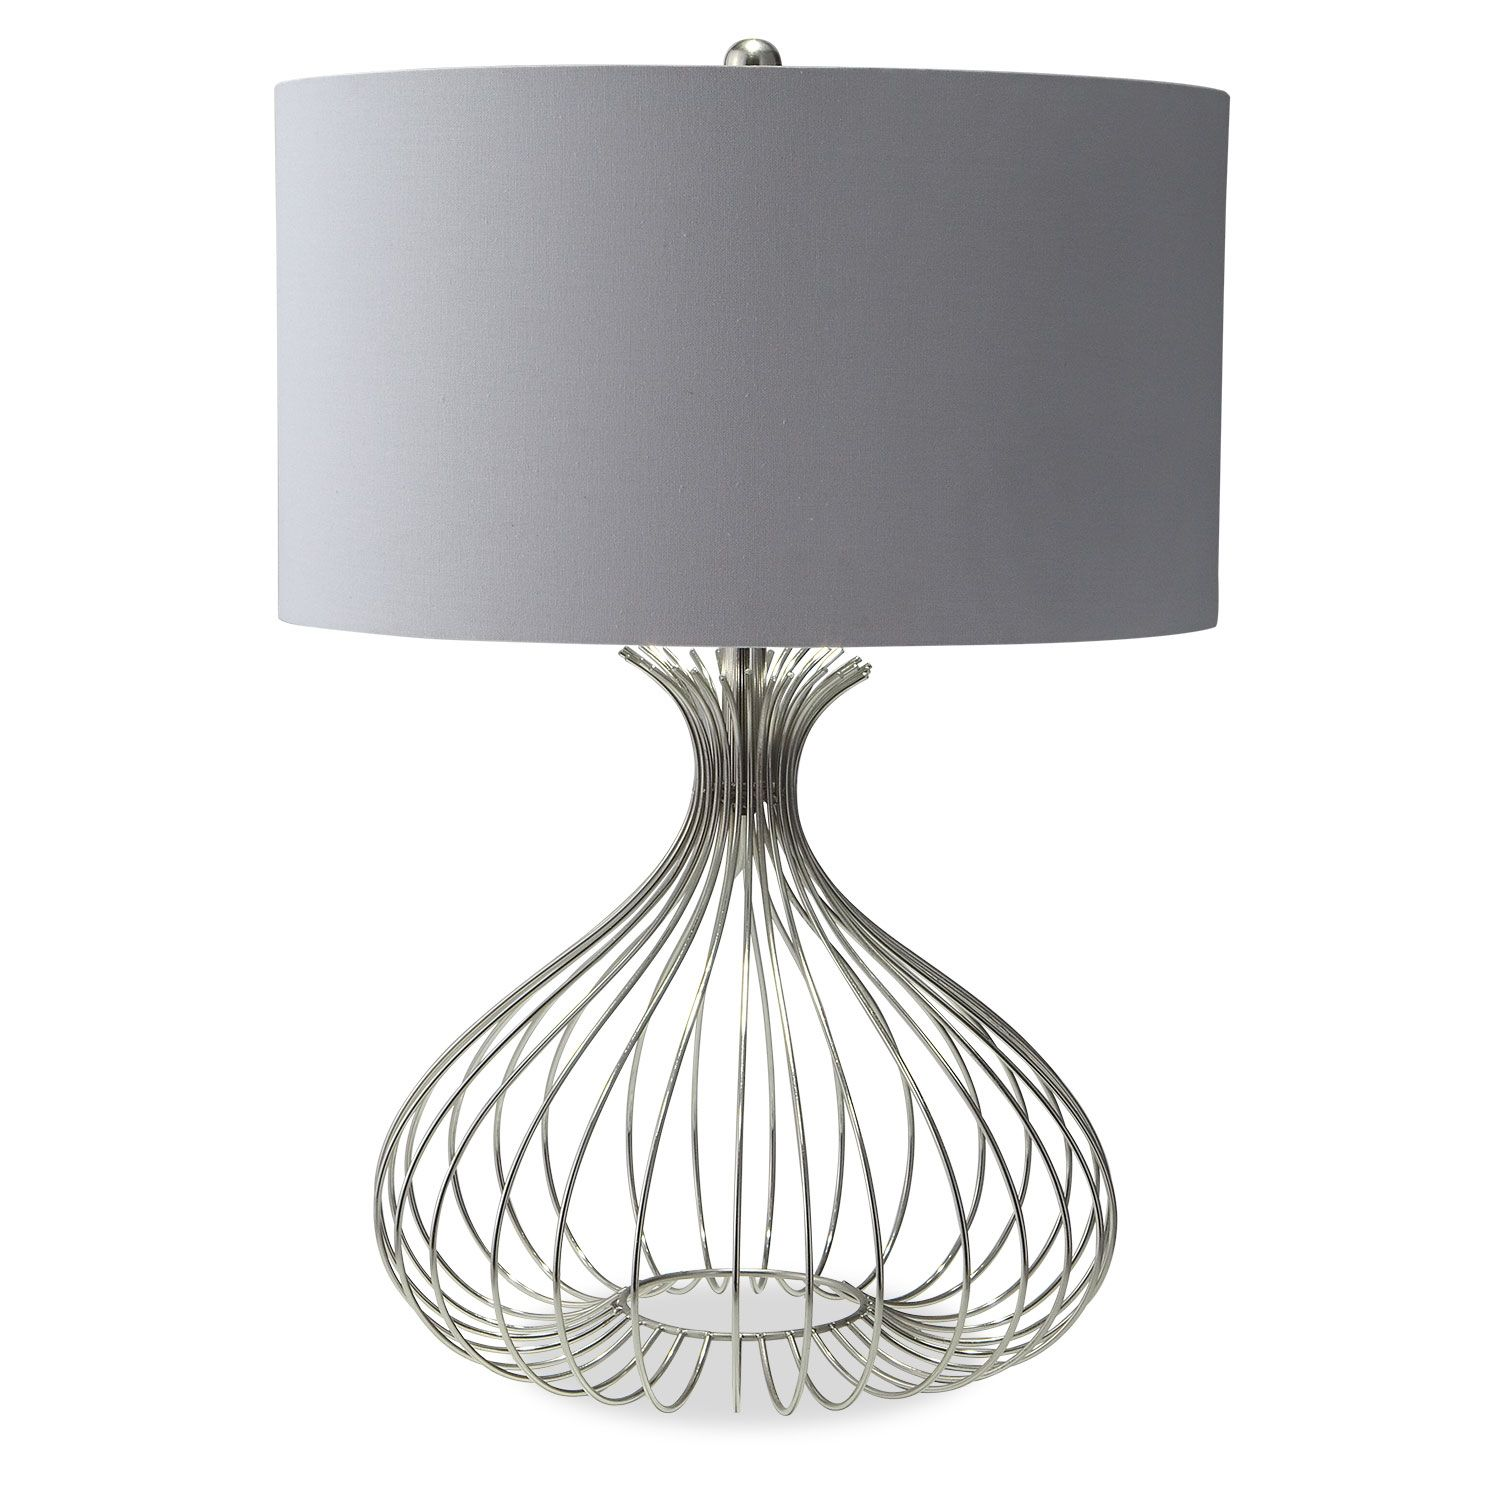 Nickel Wire Table Lamp - Value City Furniture